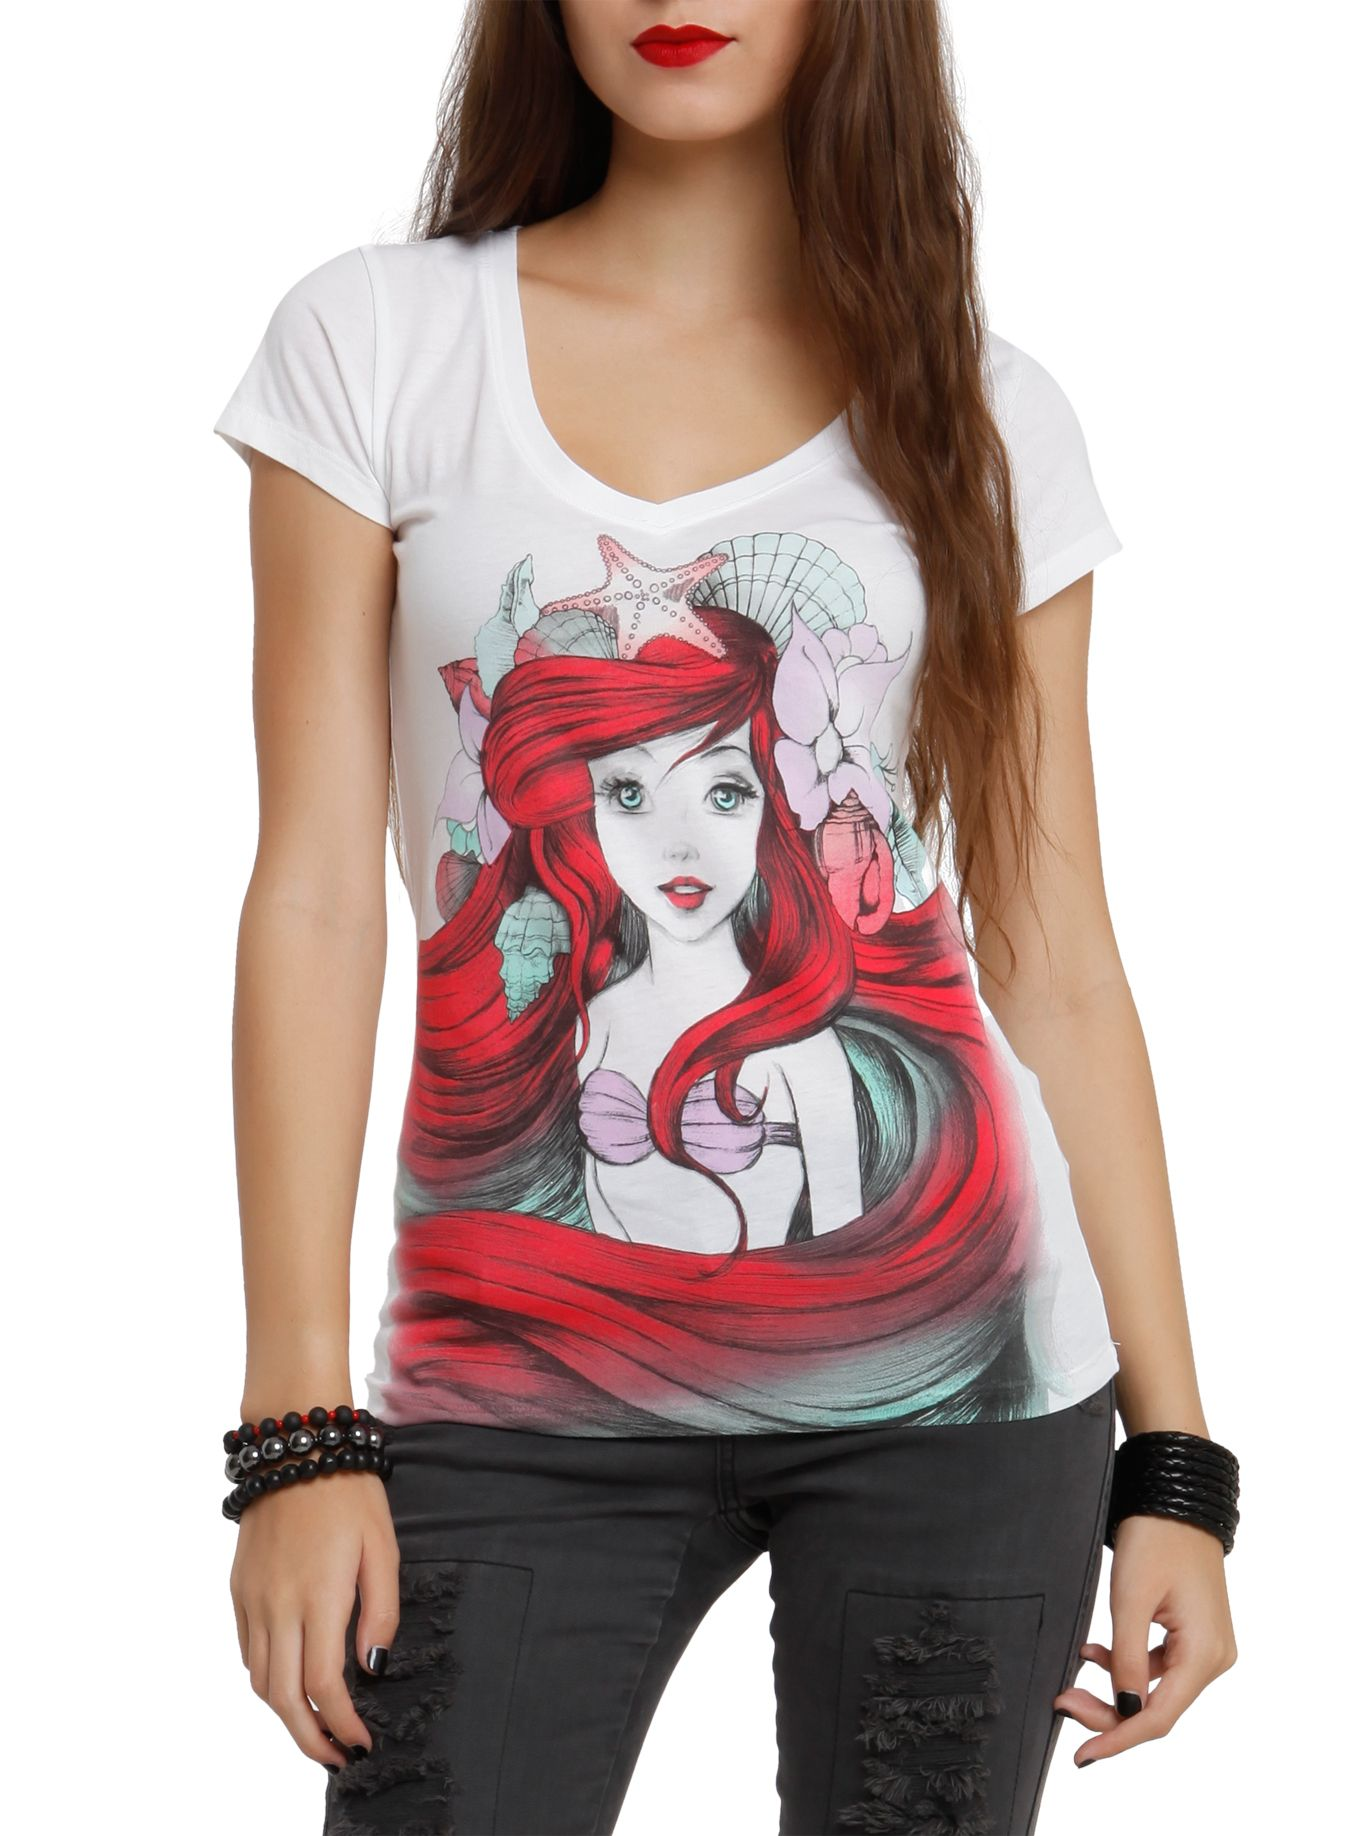 Ariel La Sirenita Part Of Your World Camiseta Mujer Negro S